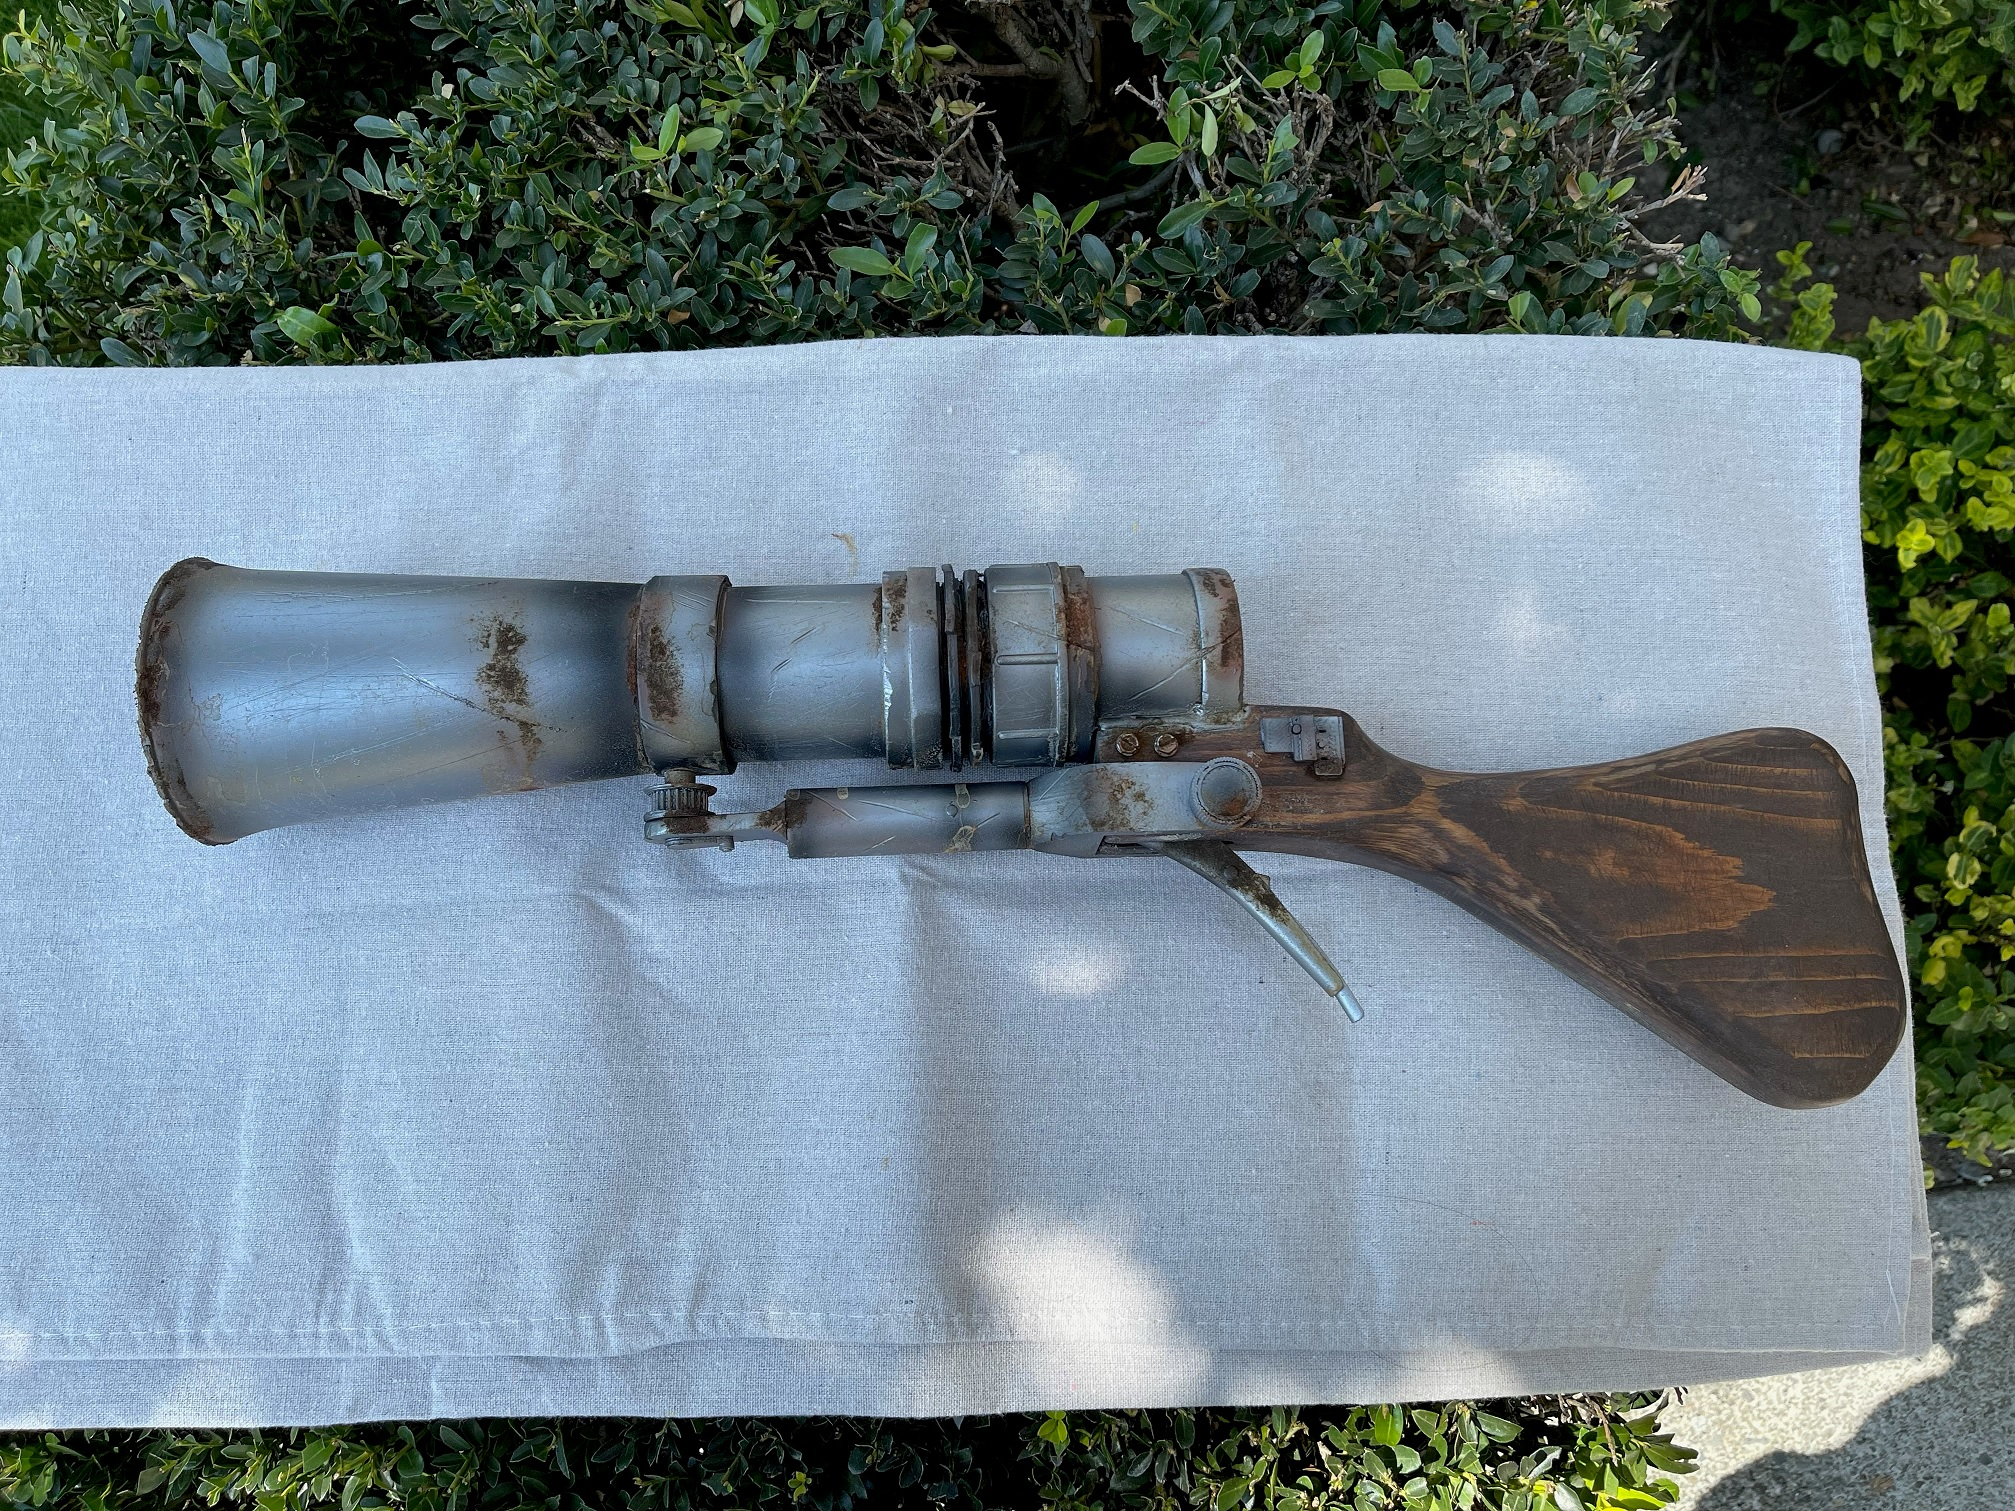 Jawa - ION Rifle - Finished with Rust - Pic 1.jpg